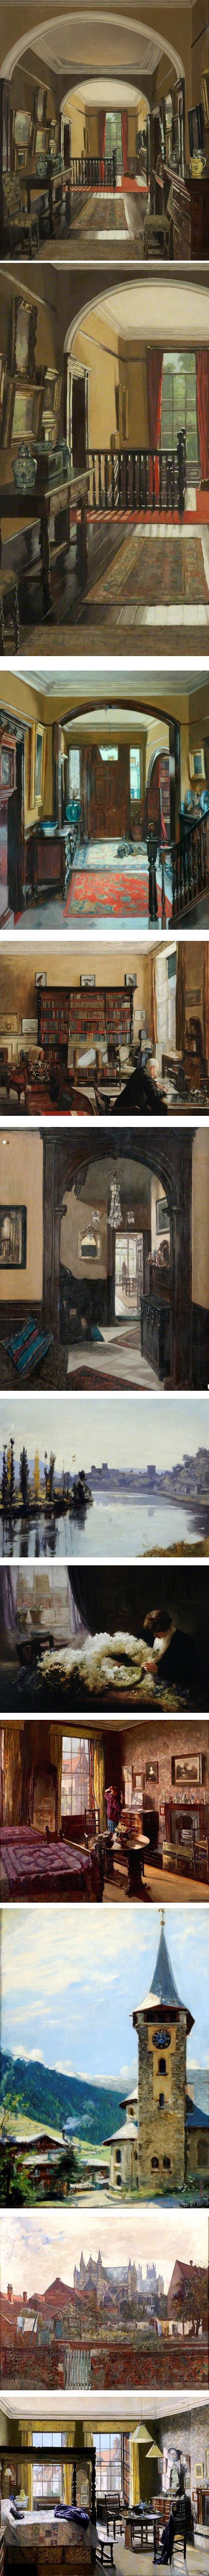 Mary Dawson Elwell Britiah painter active late